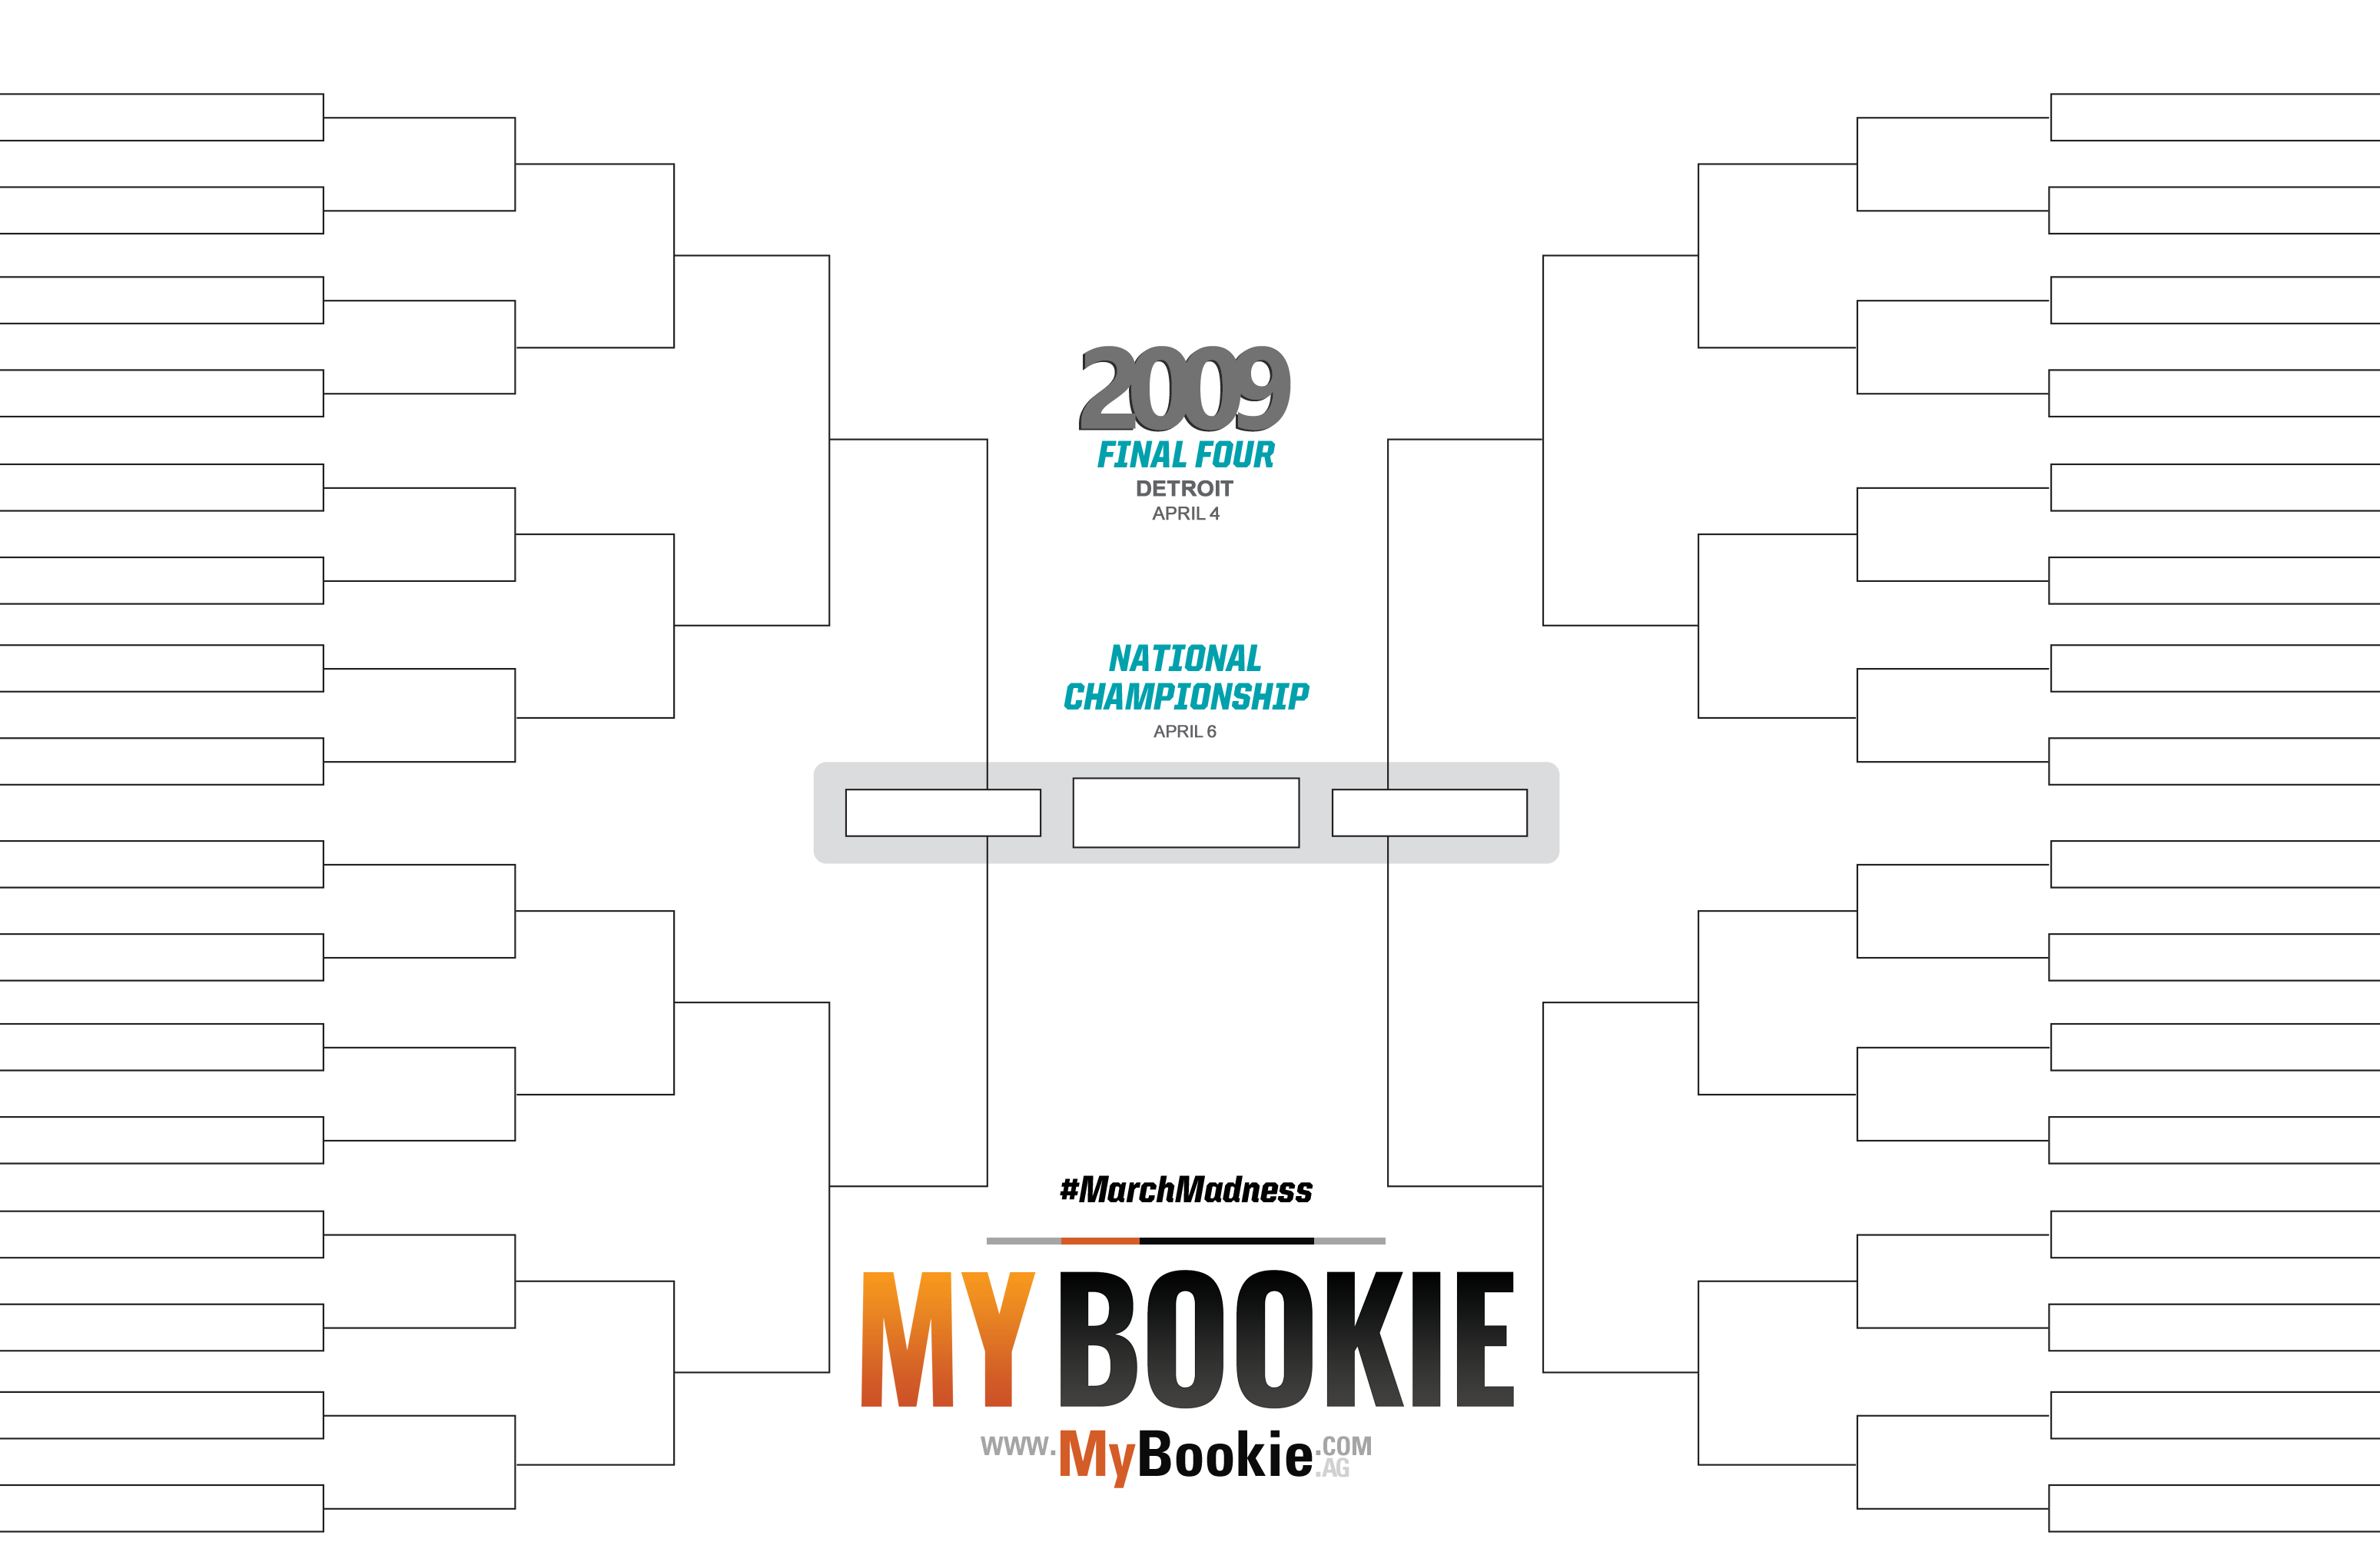 March Madness Bracket 2020 Printable.March Madness 2009 Printable Ncaa Bracket Mybookie Sportsbook